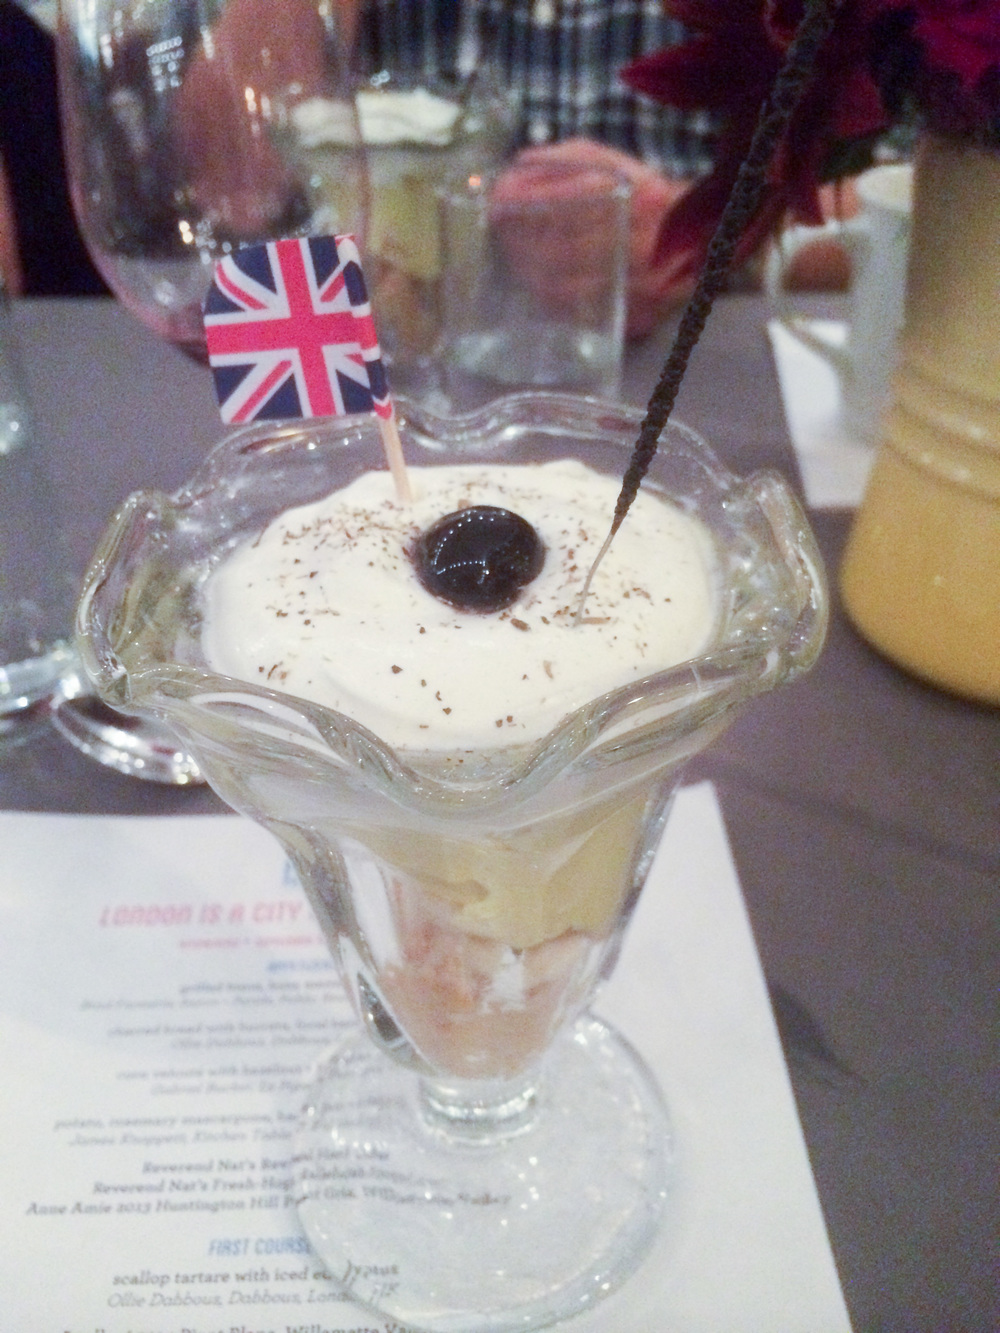 Banana + Custard Knickerbockerglory